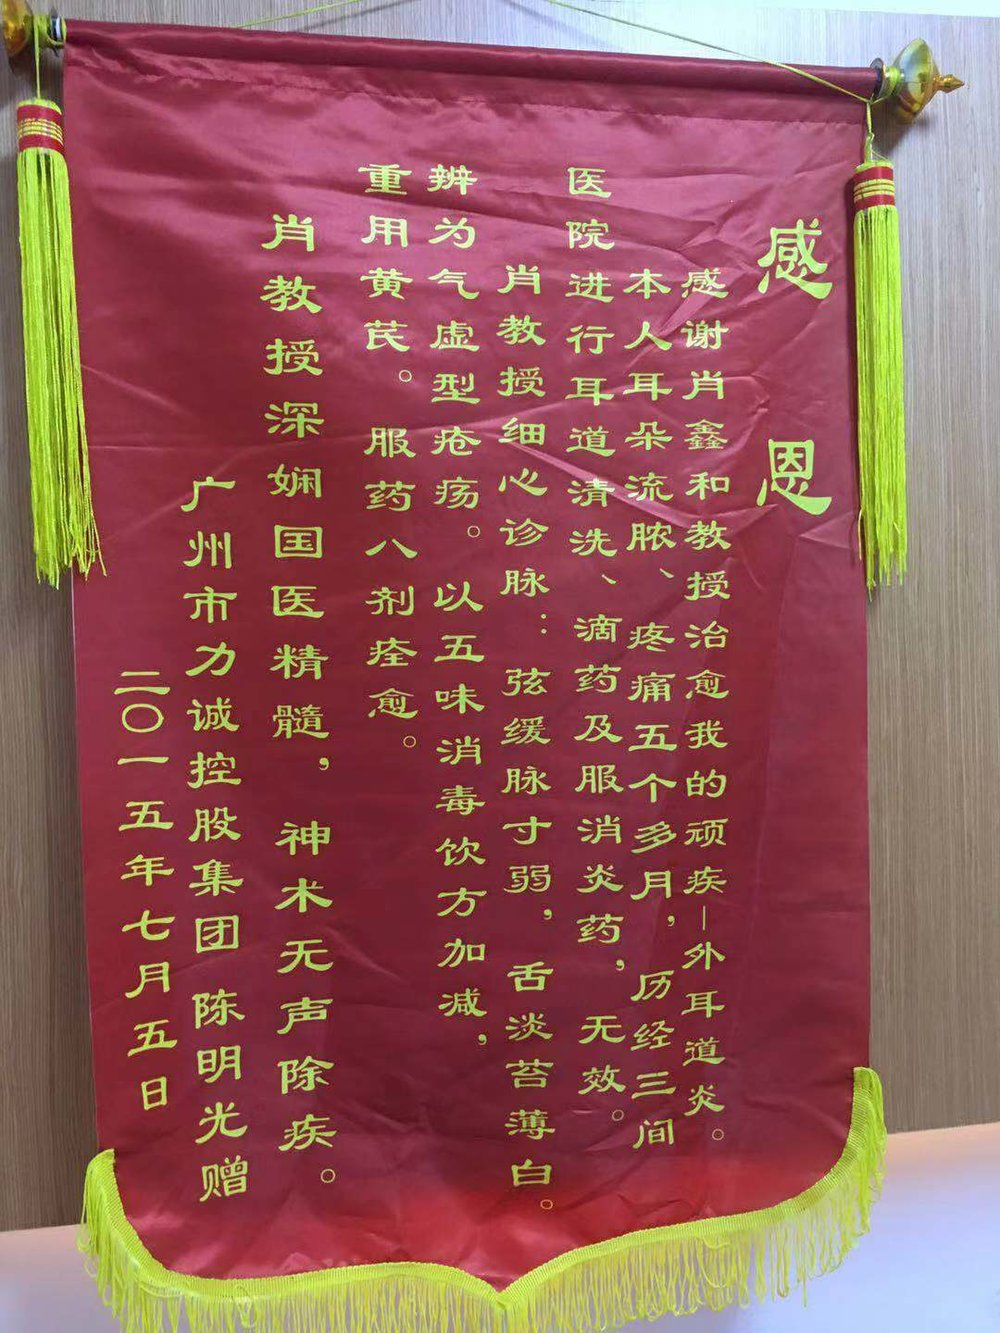 Thank you flag to Prof. Xiao from a patient with ear infection